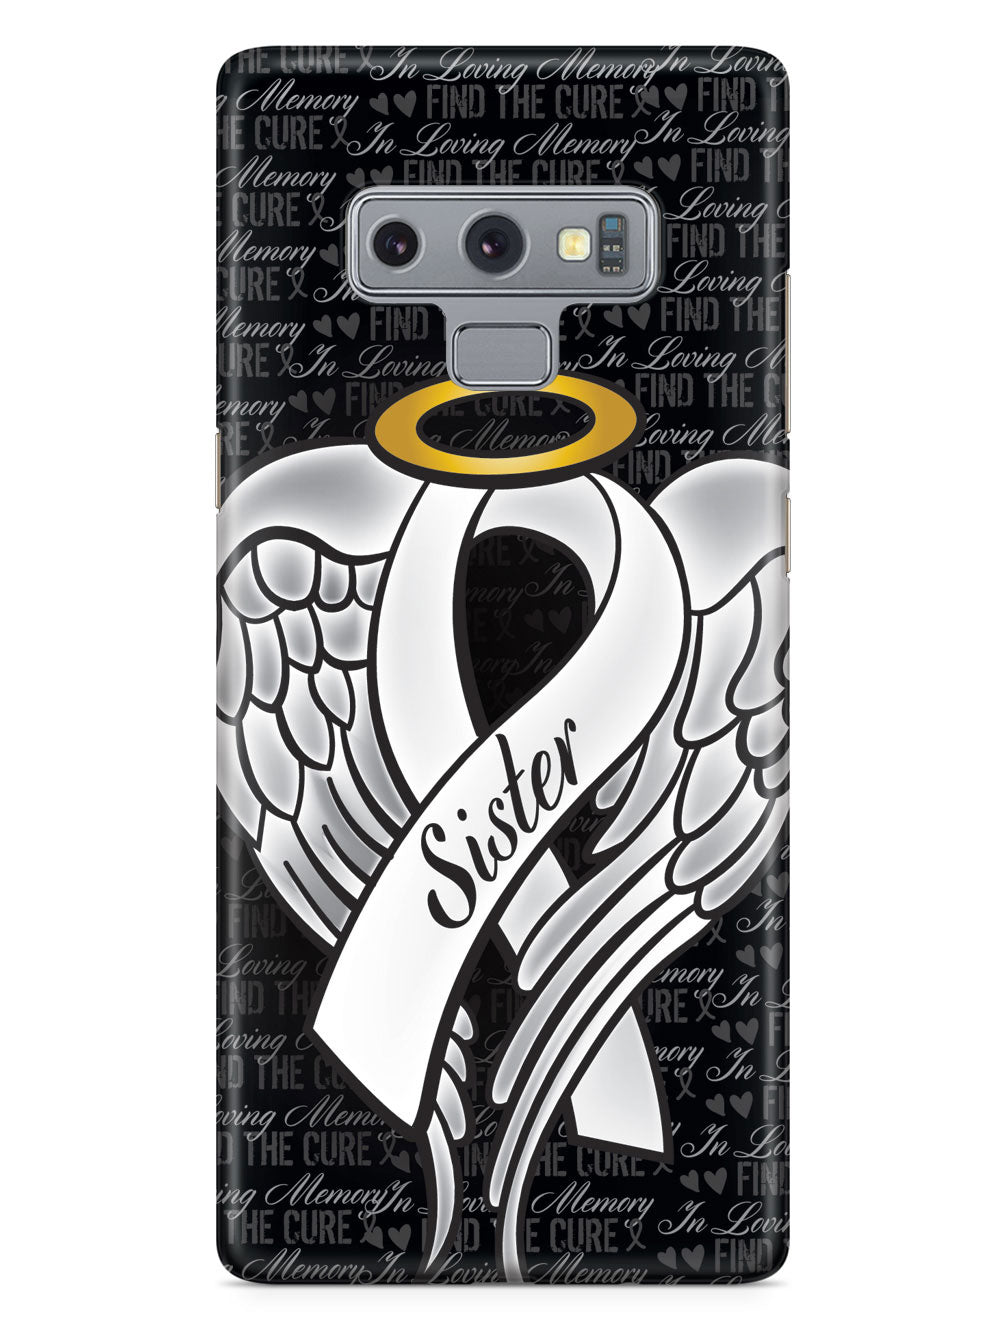 In Loving Memory of My Sister - White Ribbon Case